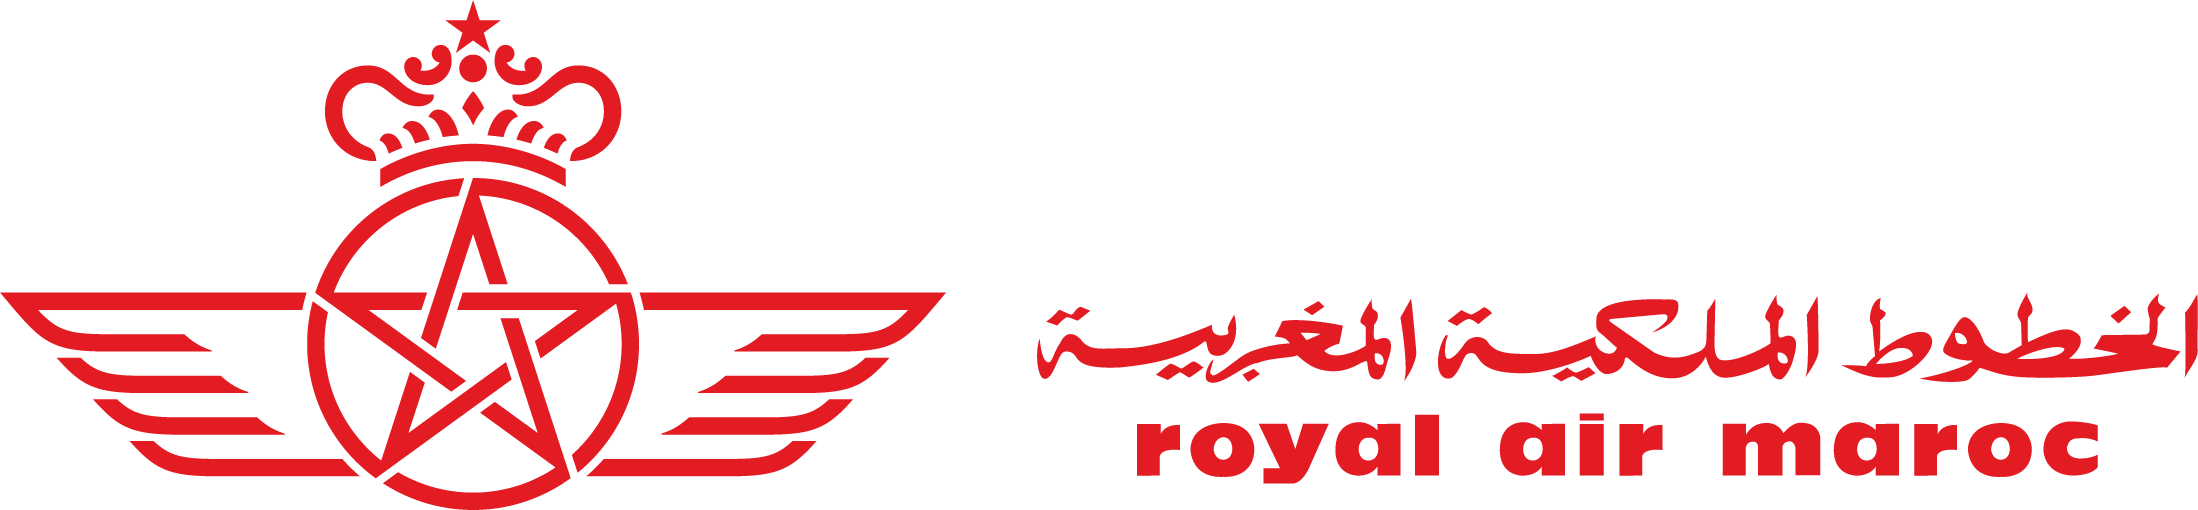 Royal Air Maroc ロゴ